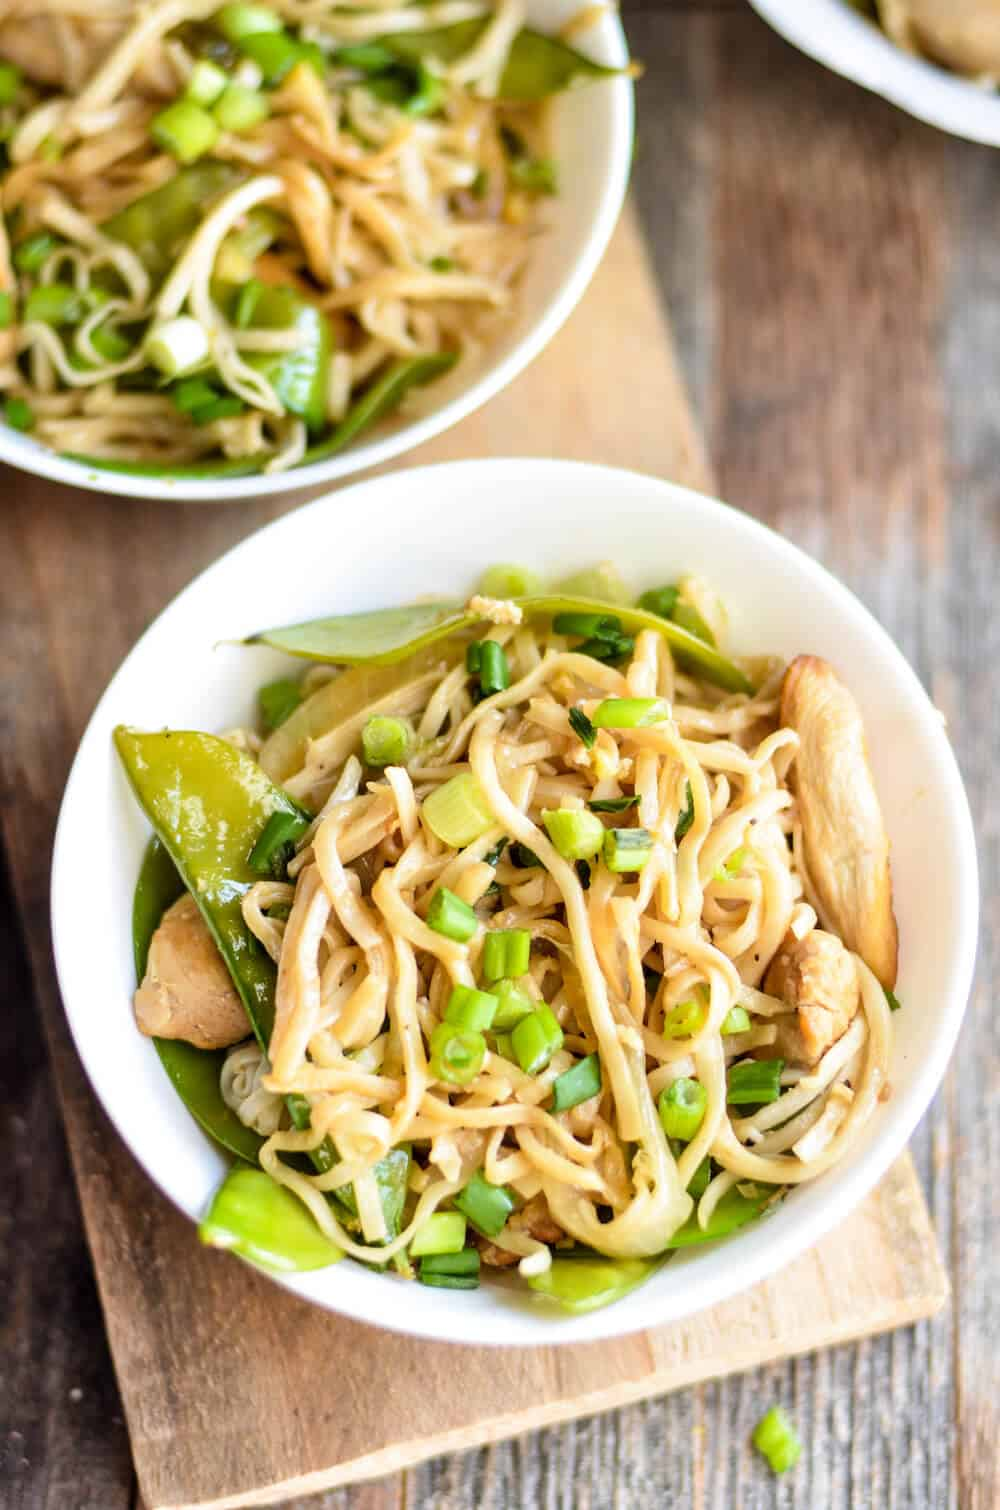 Make this delicious chicken lo mein recipe in about 15 minutes! This tasty Asian dish will make the whole family happy. So easy!